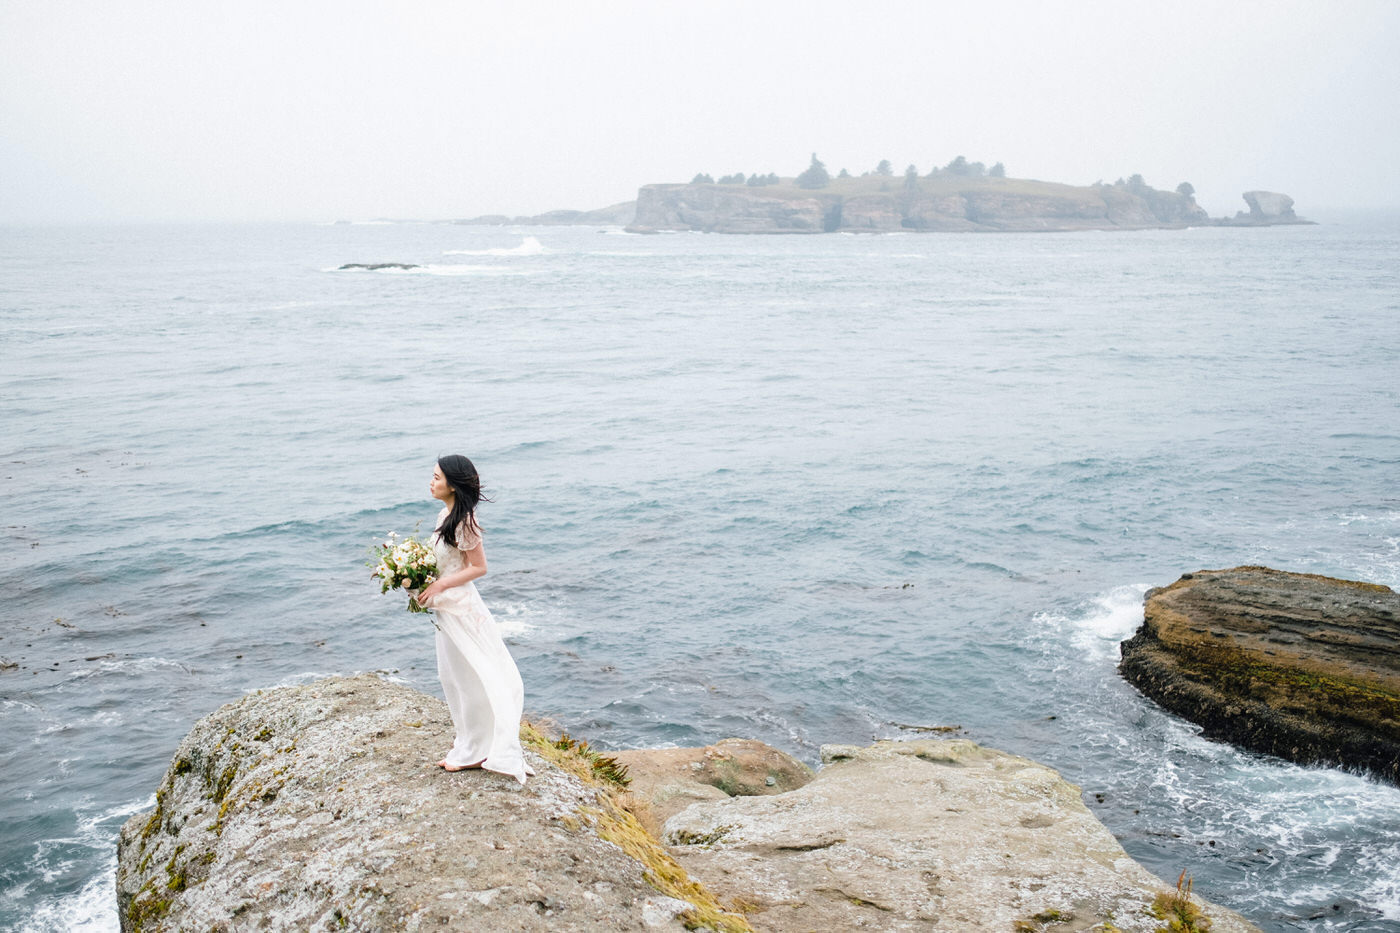 225-pacific-northwest-wedding-photography-by-ryan-flynn.jpg